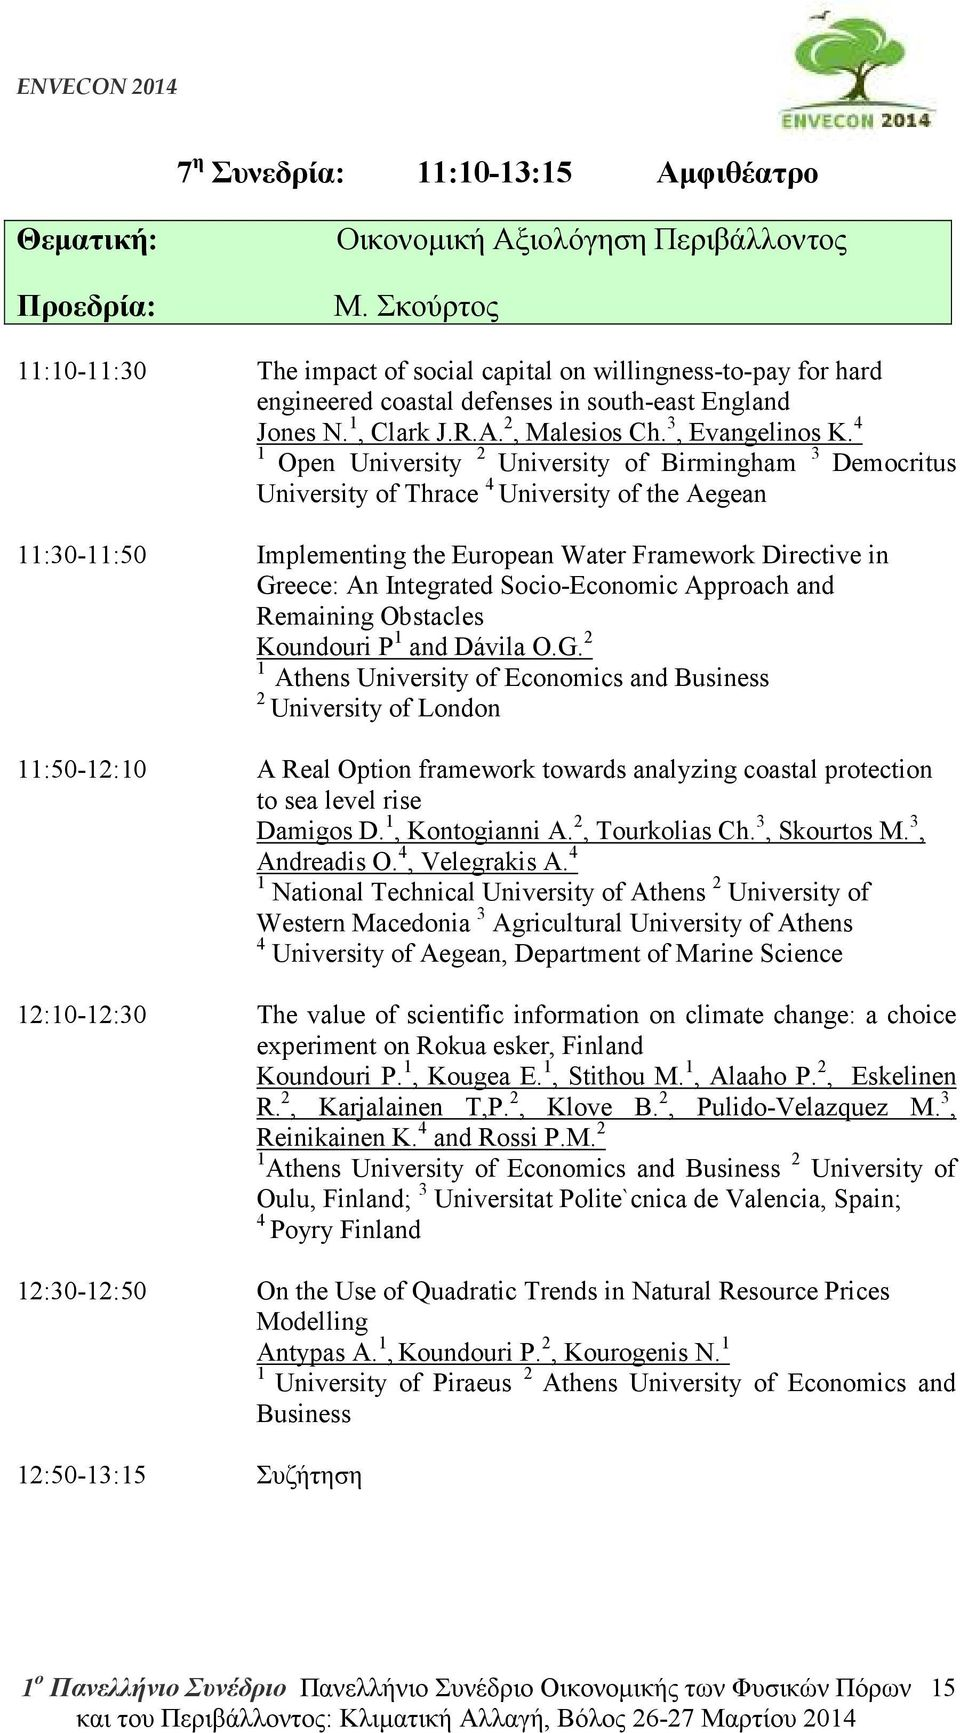 4 1 Open University 2 University of Birmingham 3 Democritus University of Thrace 4 University of the Aegean 11:30-11:50 Implementing the European Water Framework Directive in Greece: An Integrated